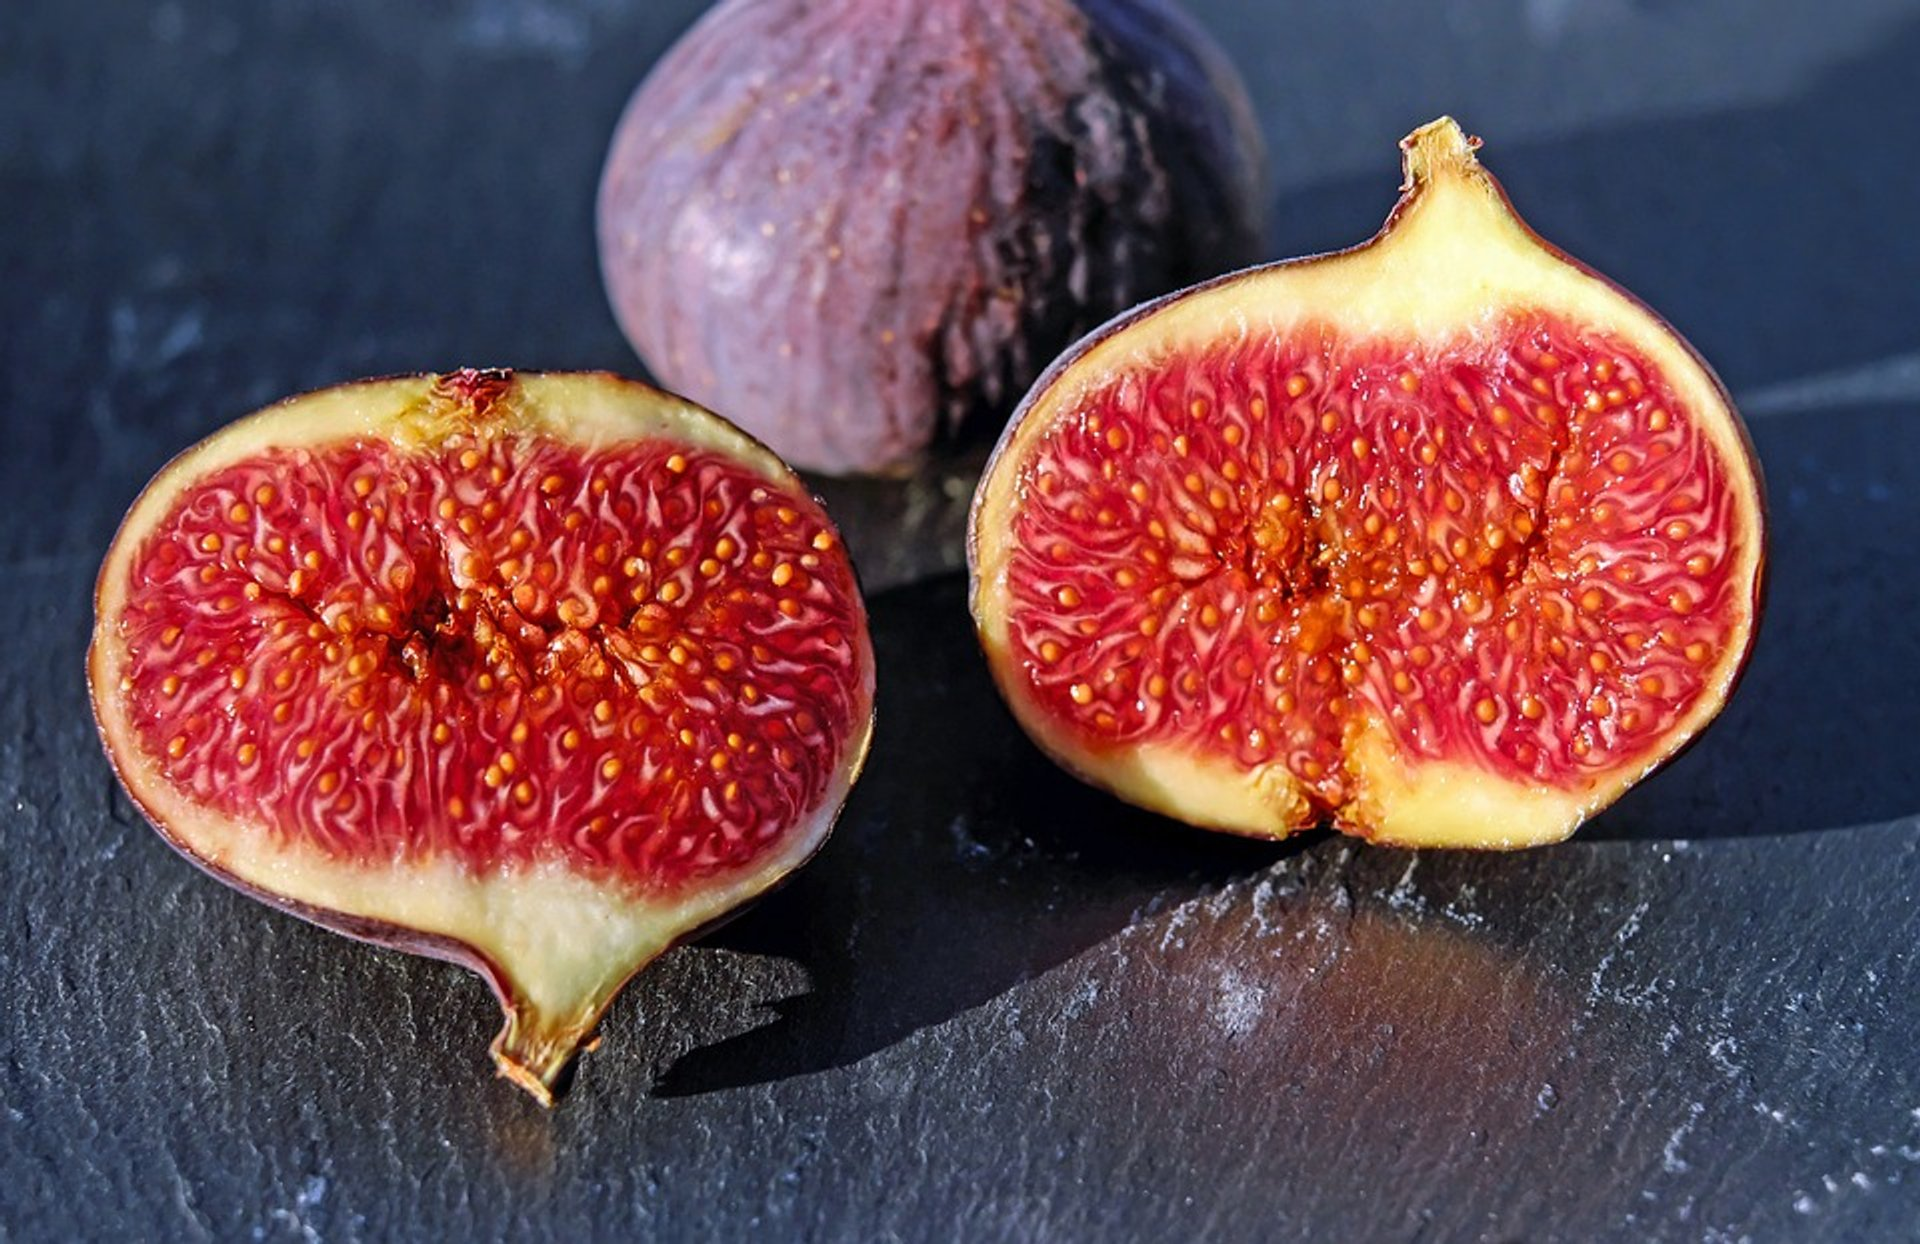 Figs in South Korea 2020 - Best Time